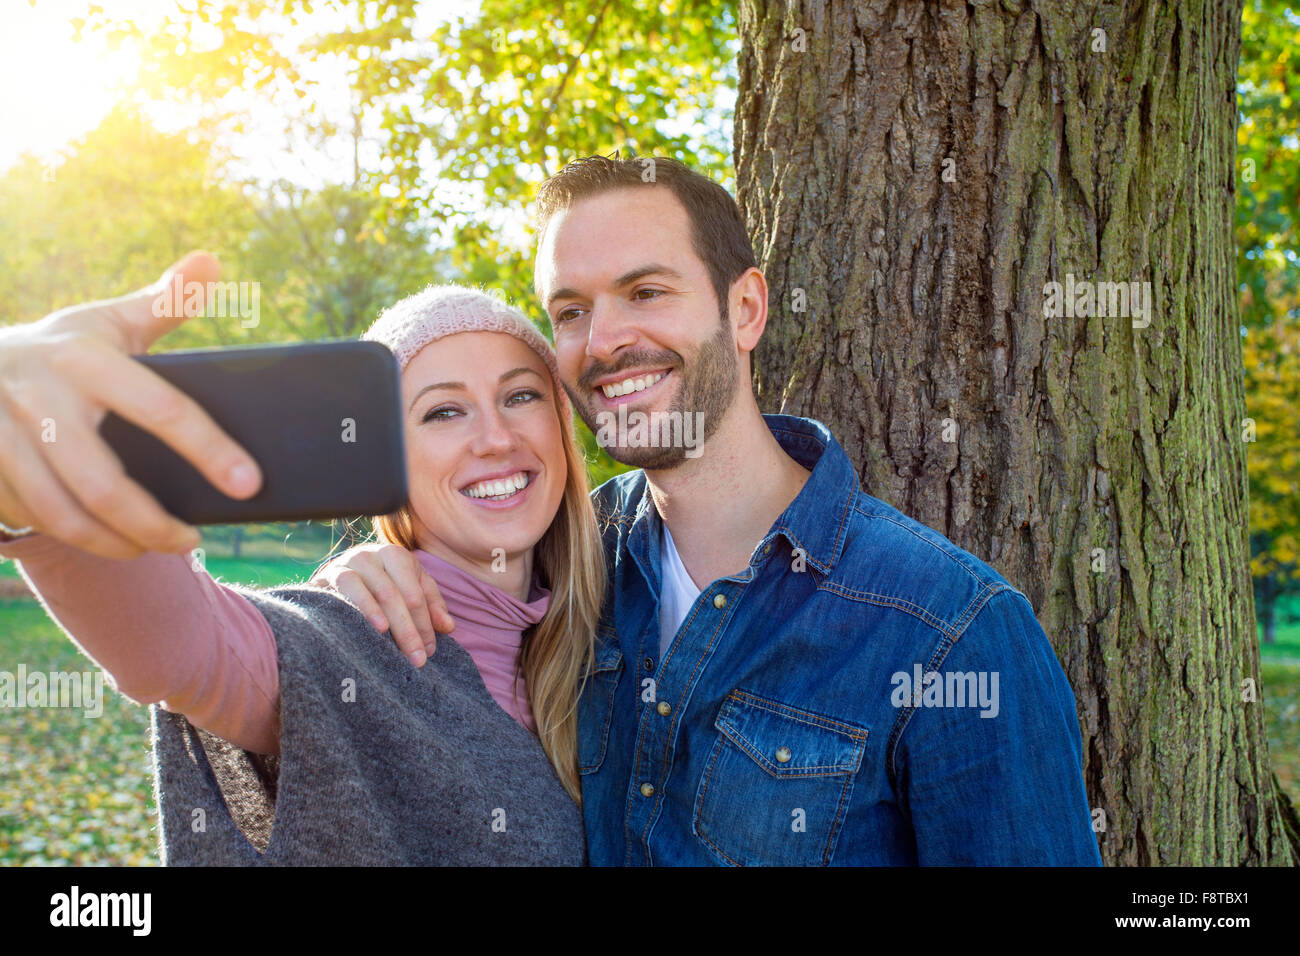 Couple taking a selfie - Stock Image